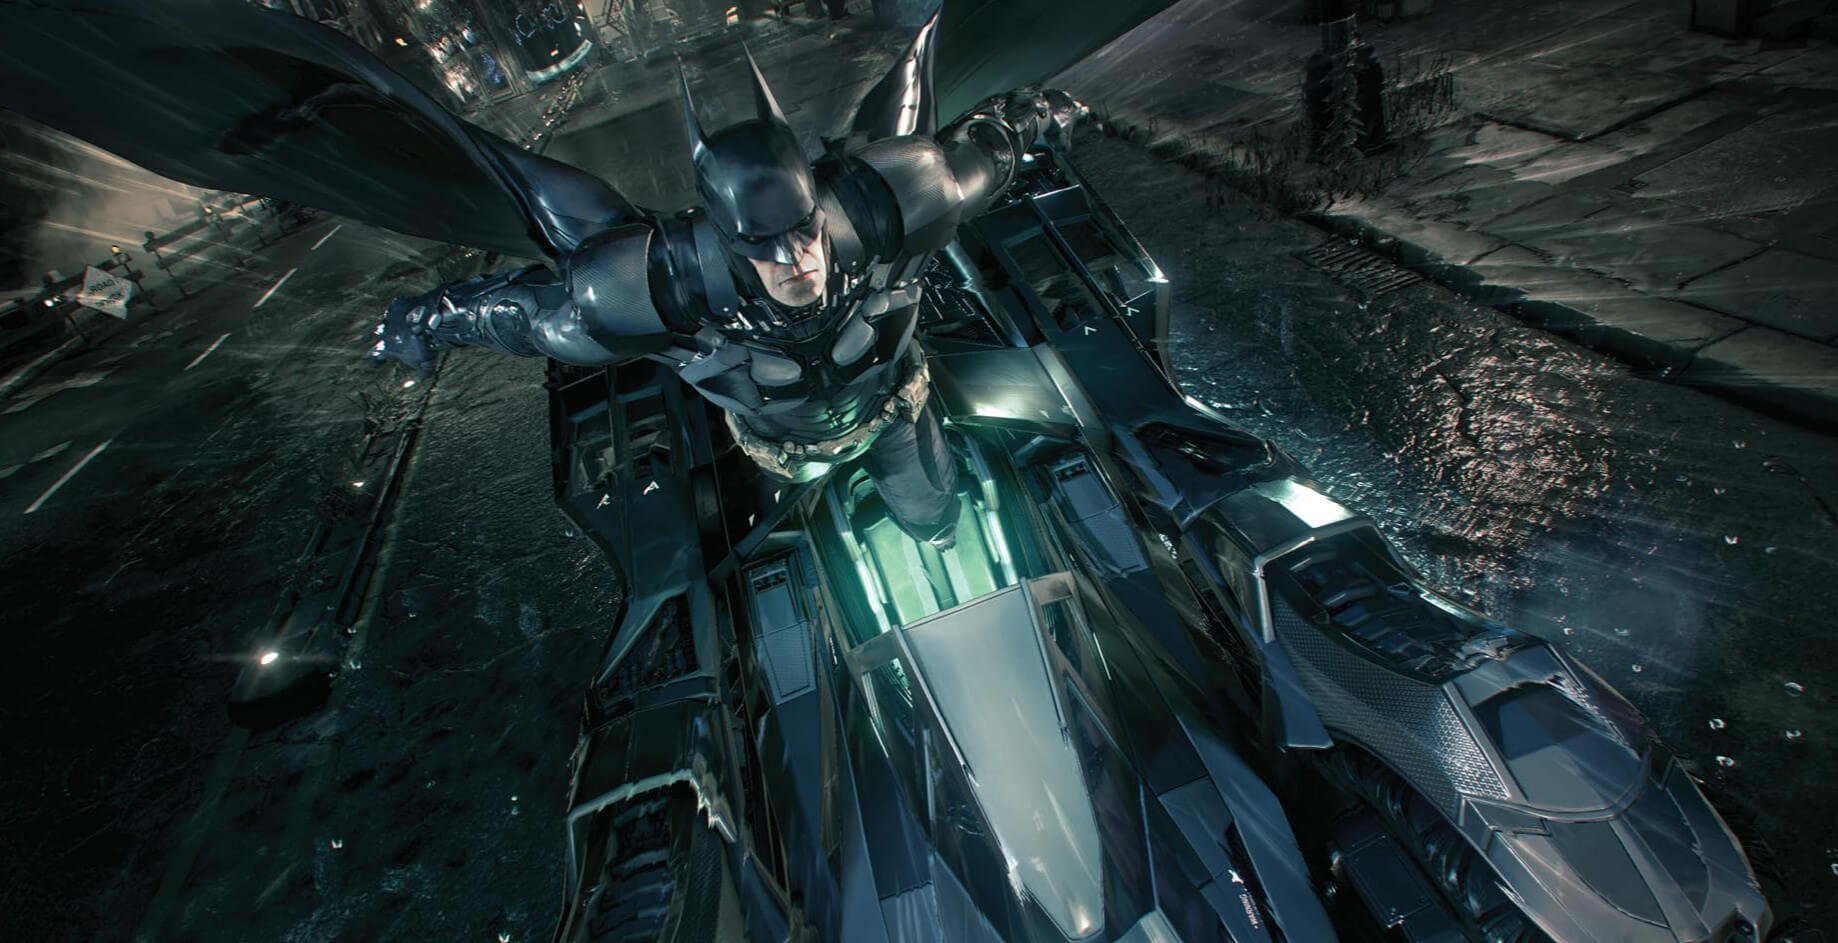 Batman: Arkham Knight (Infiltrating Ace Chemicals)